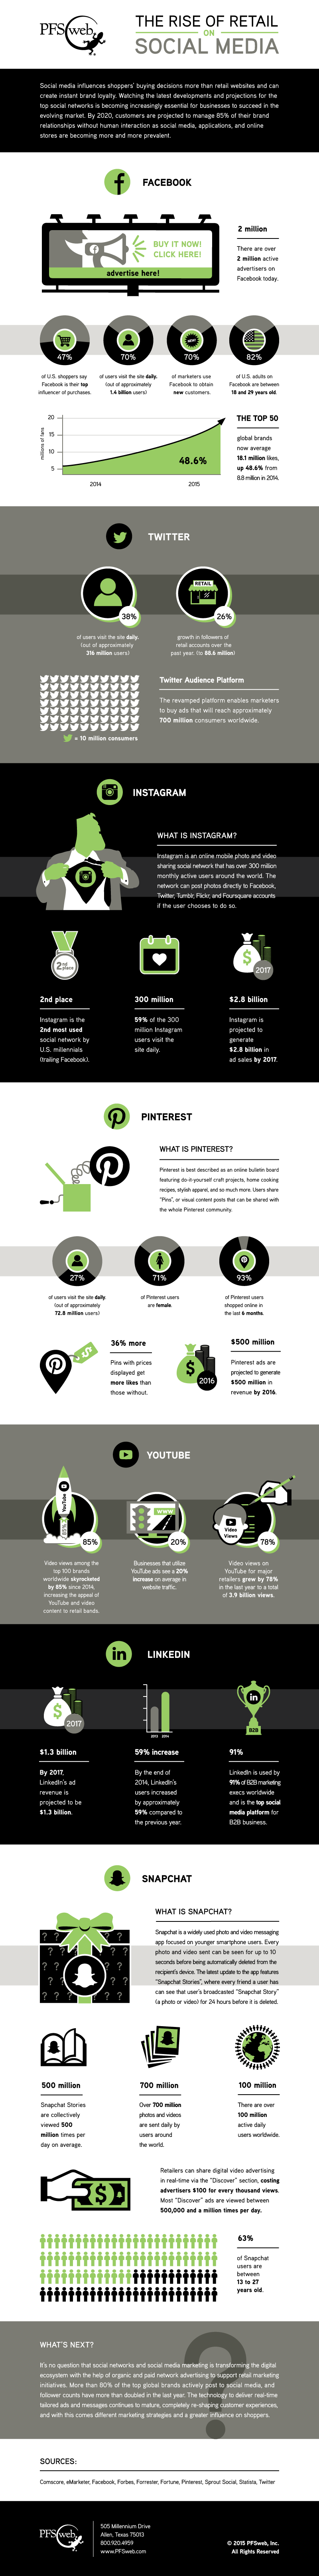 Social-Media-Retail-Industry-Infographic